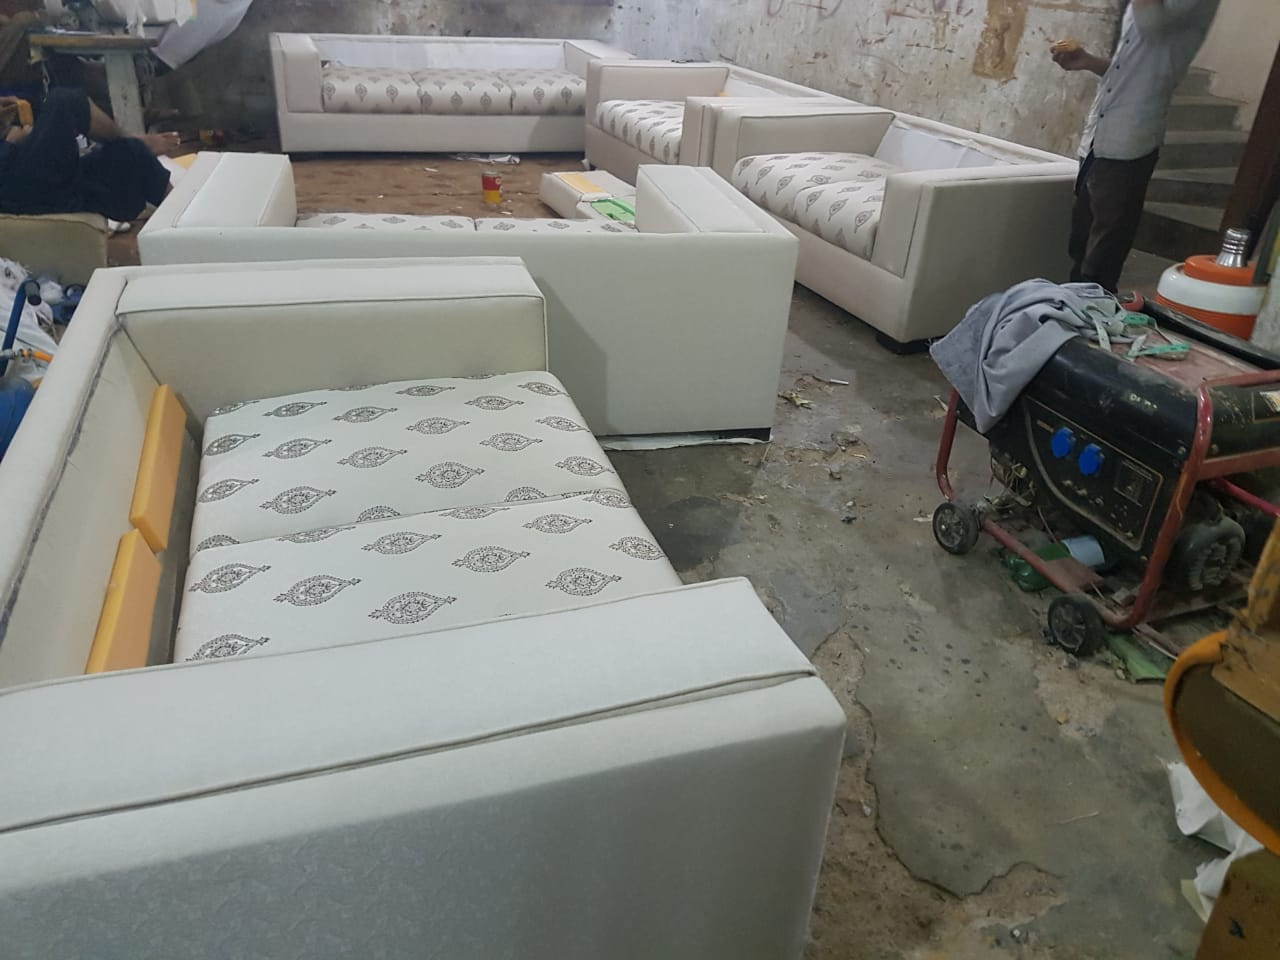 Rocking Chair Price In Karachi Karachi Best Place For Sofa Repair With Price